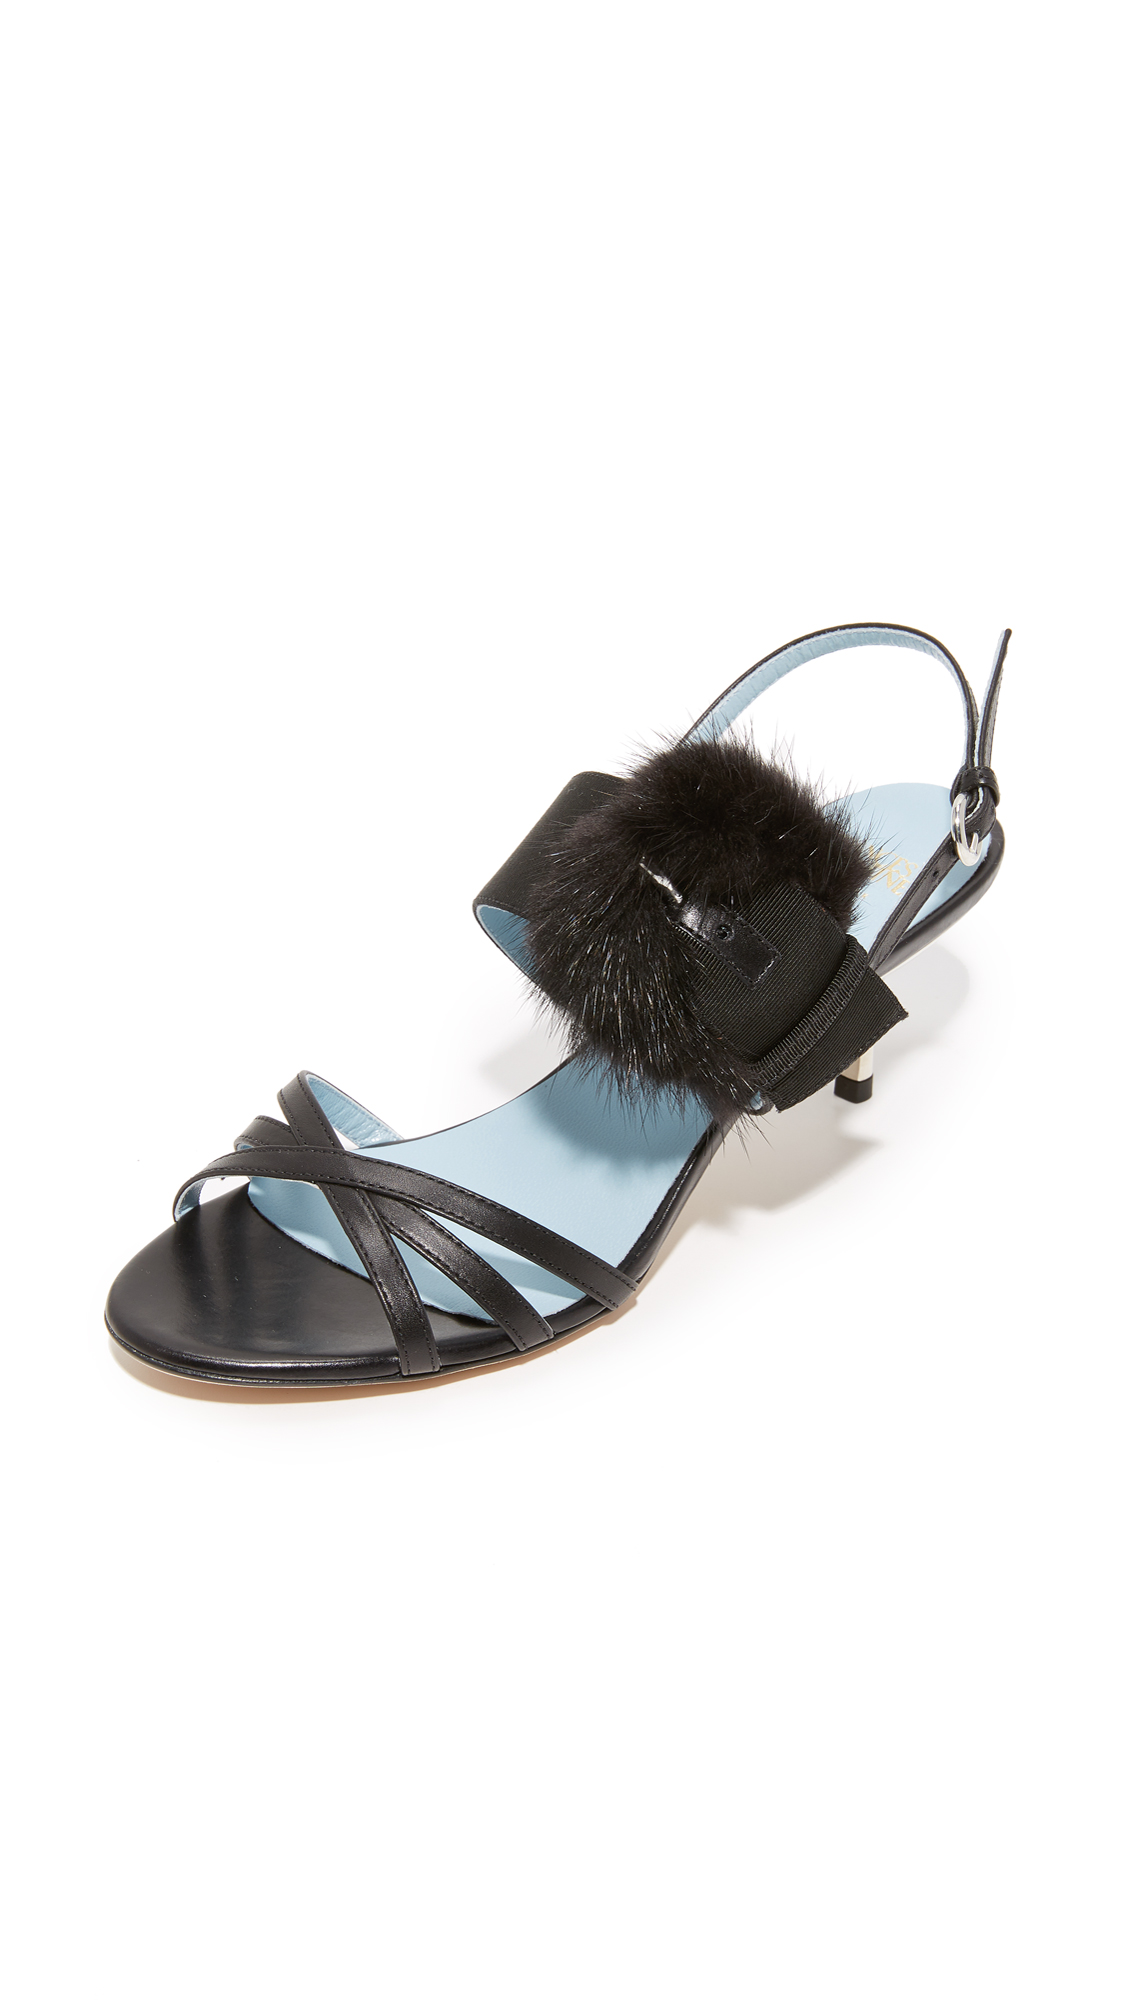 Frances Valentine Lisette Fur Sandals - Black